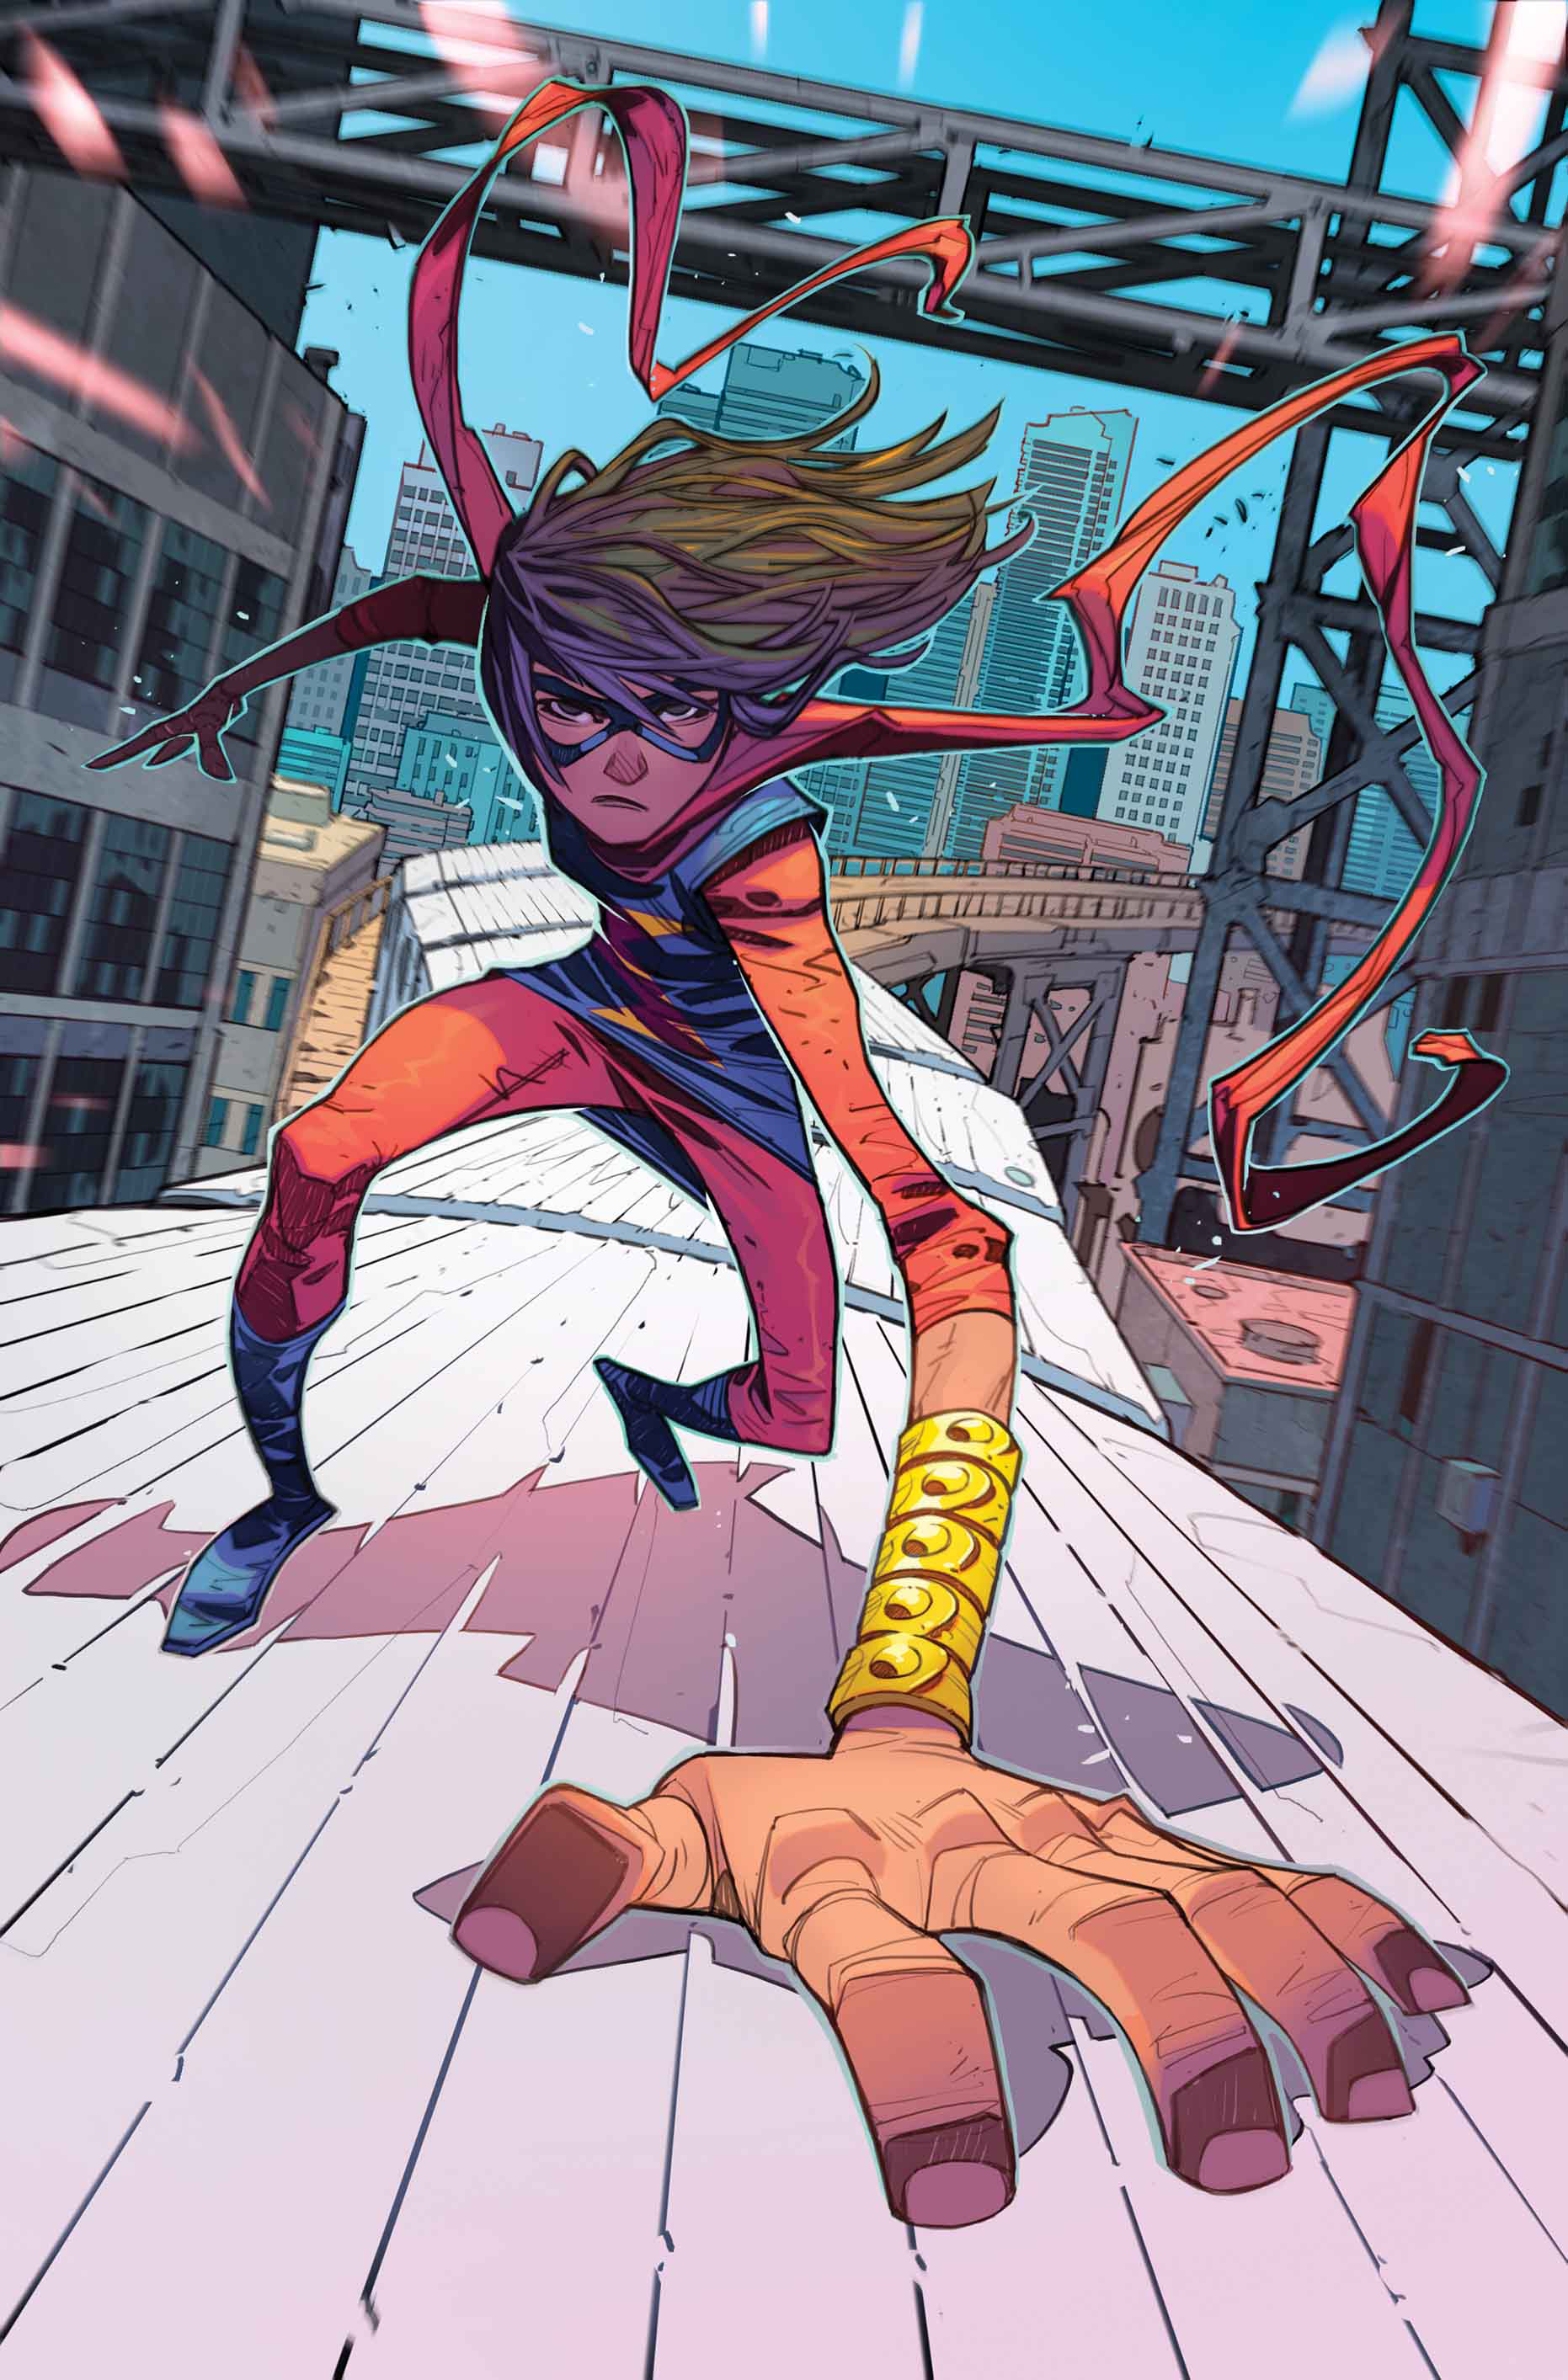 PREVIEWSworld's New Releases For 3/13/2019 - Previews World